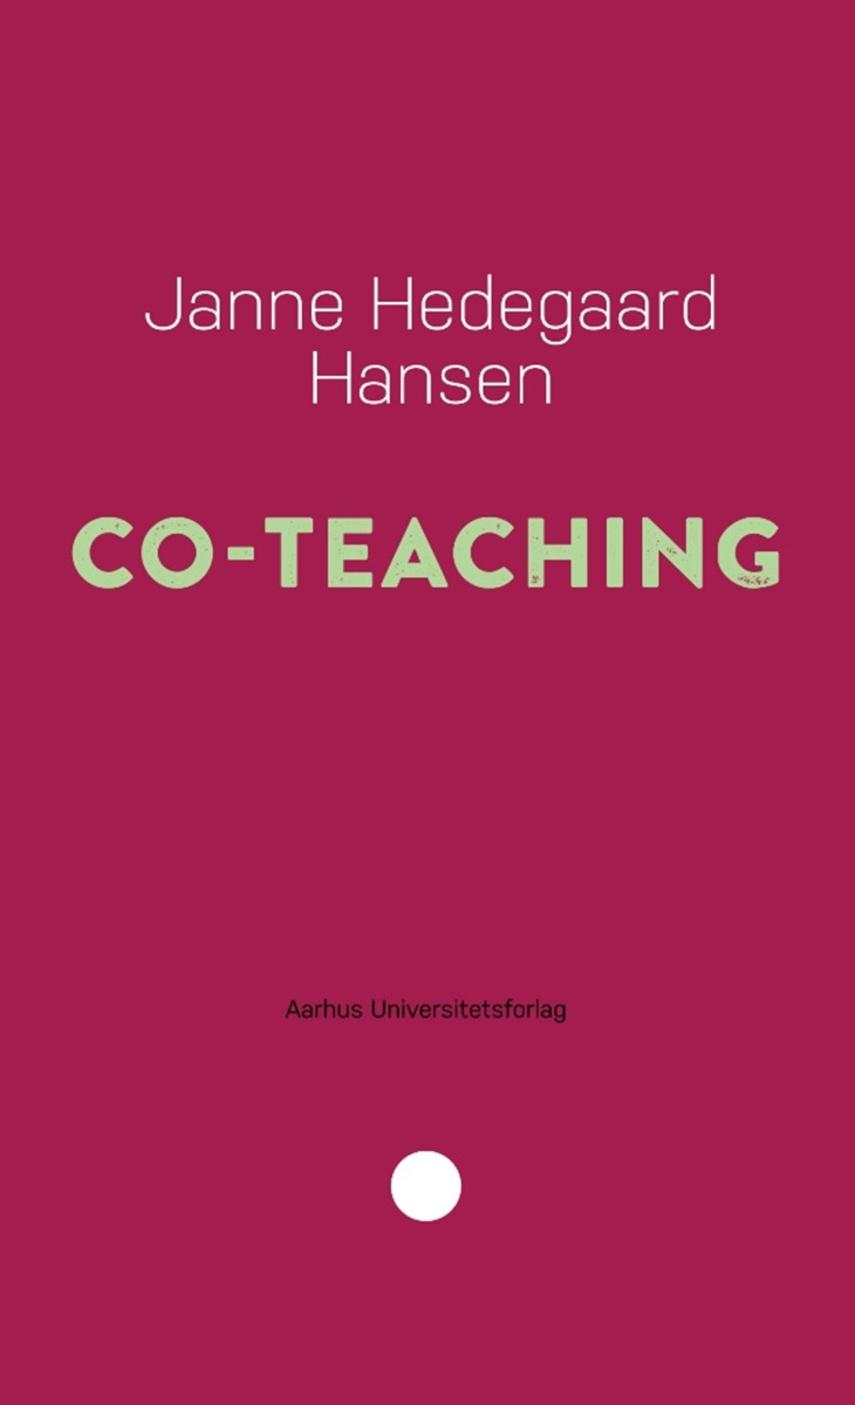 Janne Hedegaard Hansen: Co-teaching